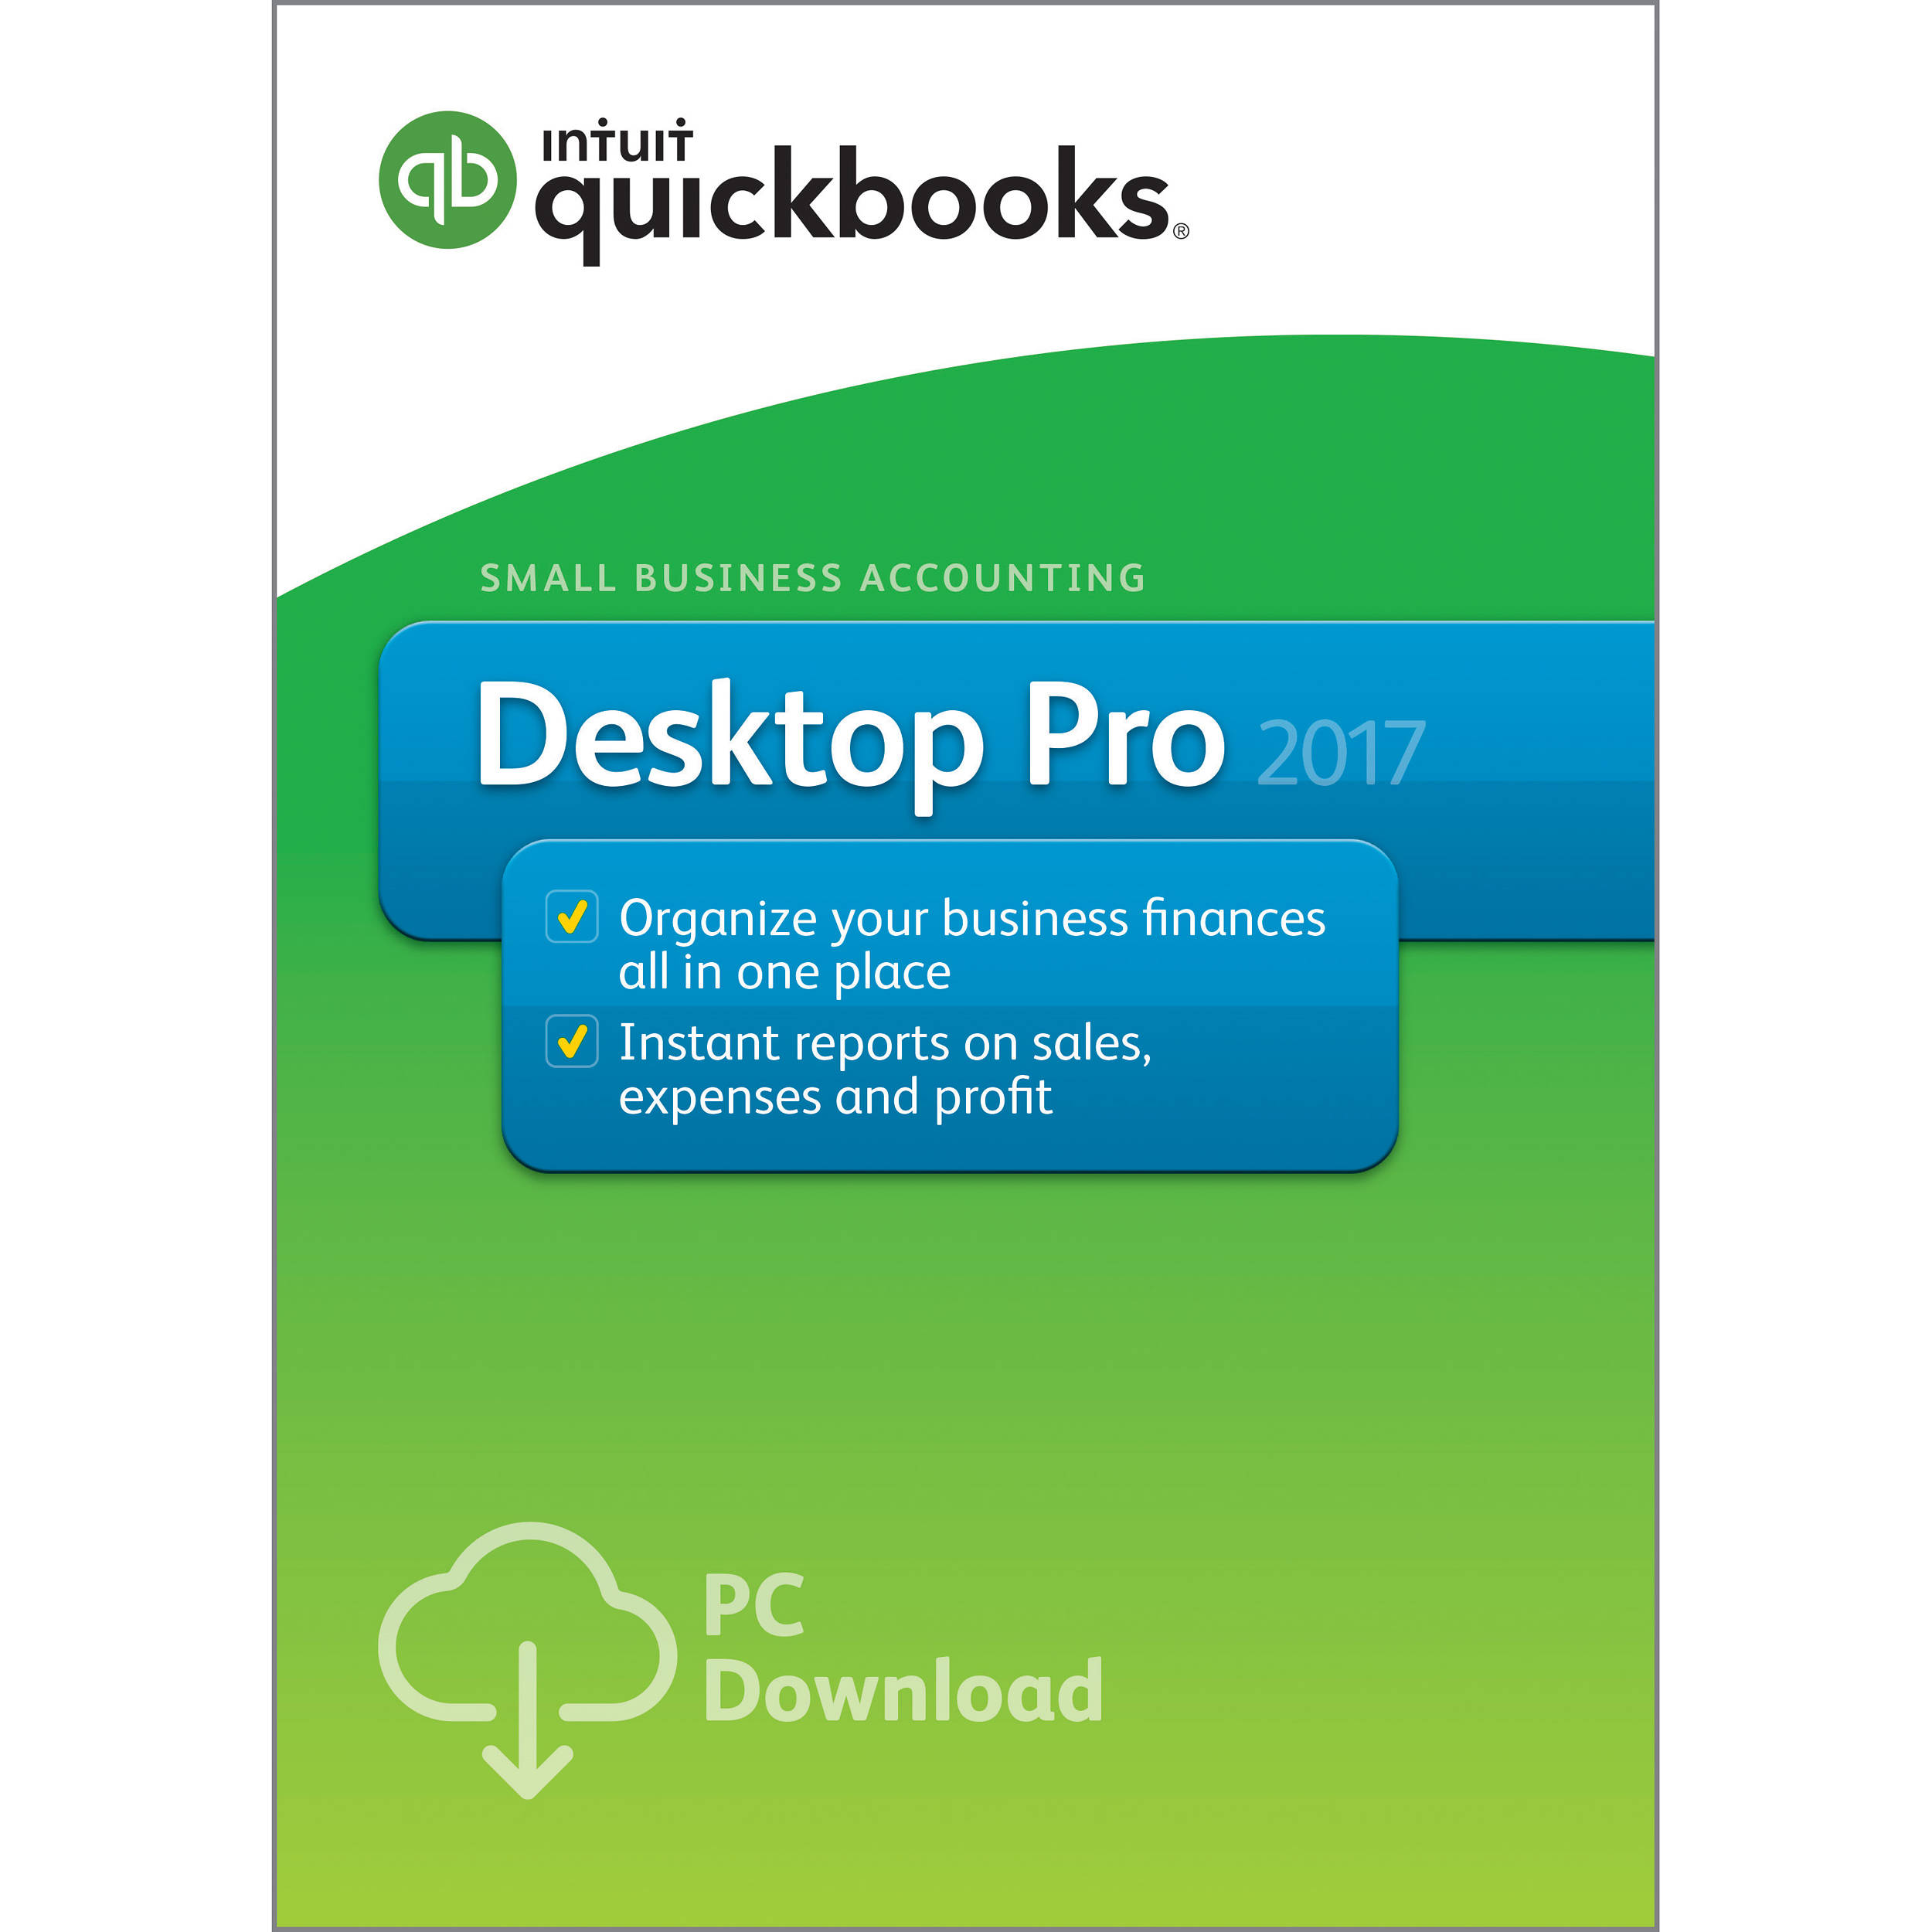 quickbooks accountant download 2017